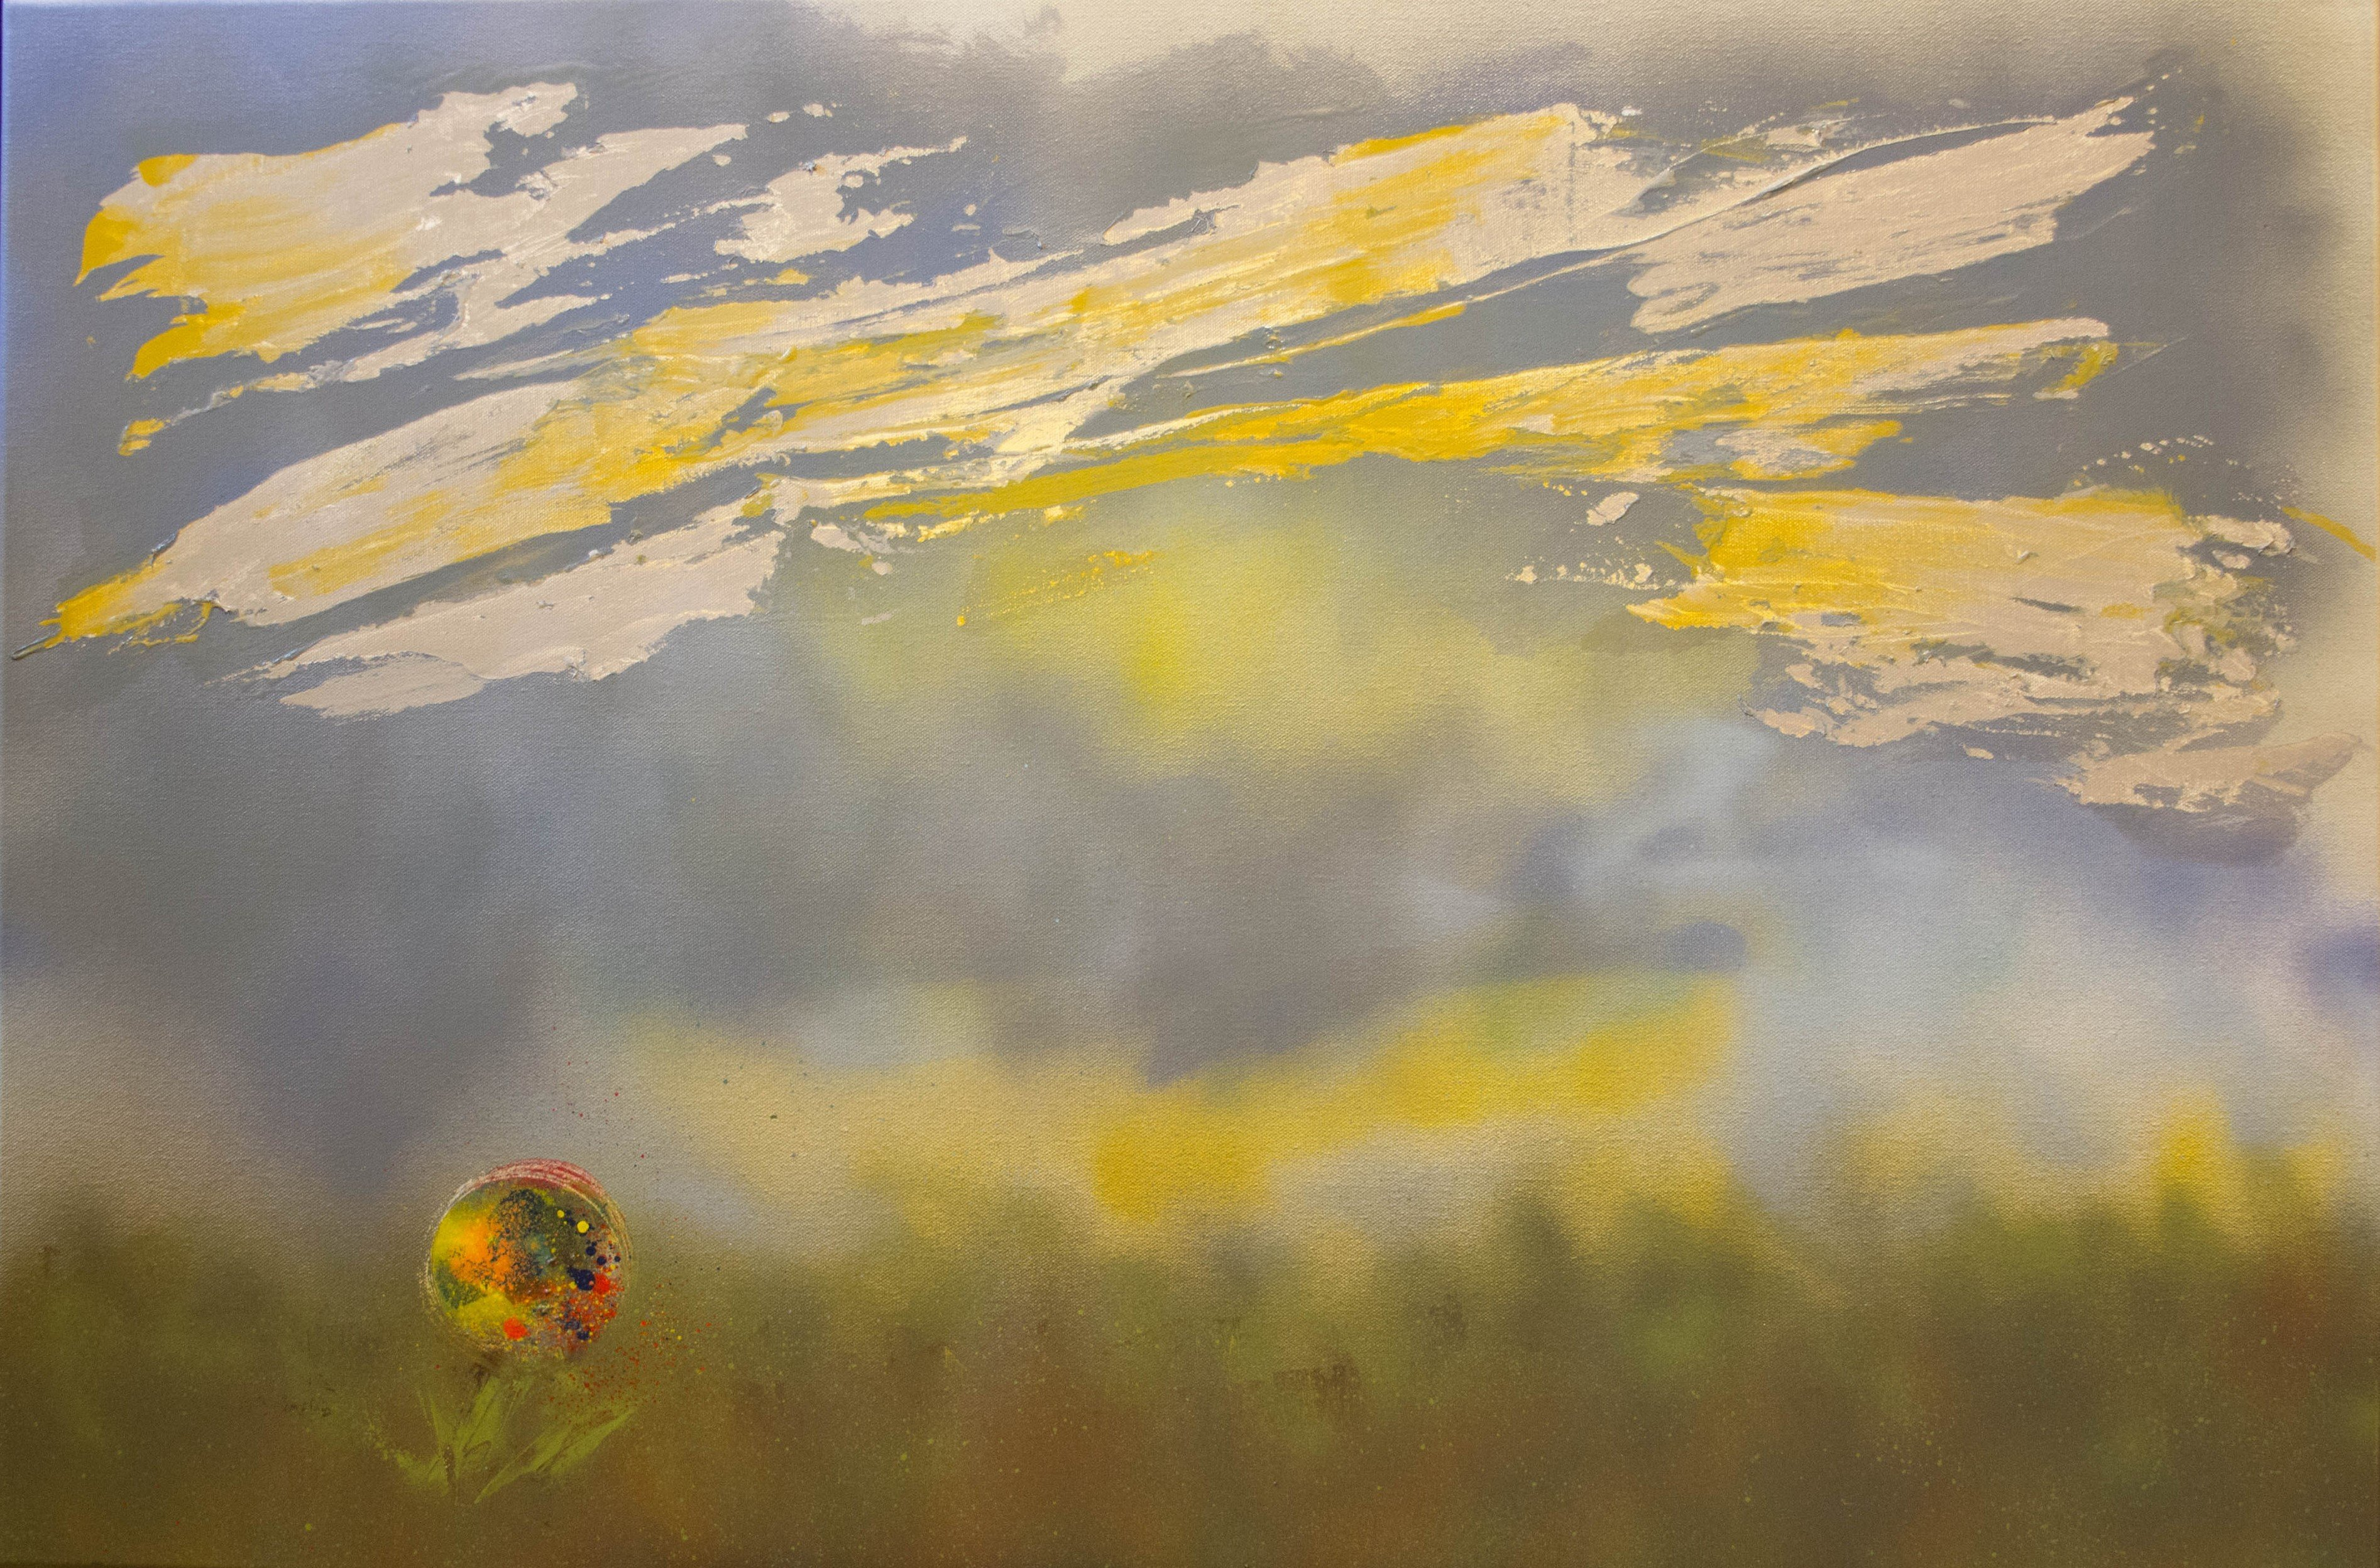 """""""#3 Pollen Tsunami"""" by Ramsay Wise, 24"""" x 36"""" Spray Paint and Acrylic on Canvas, Mud Season Review"""